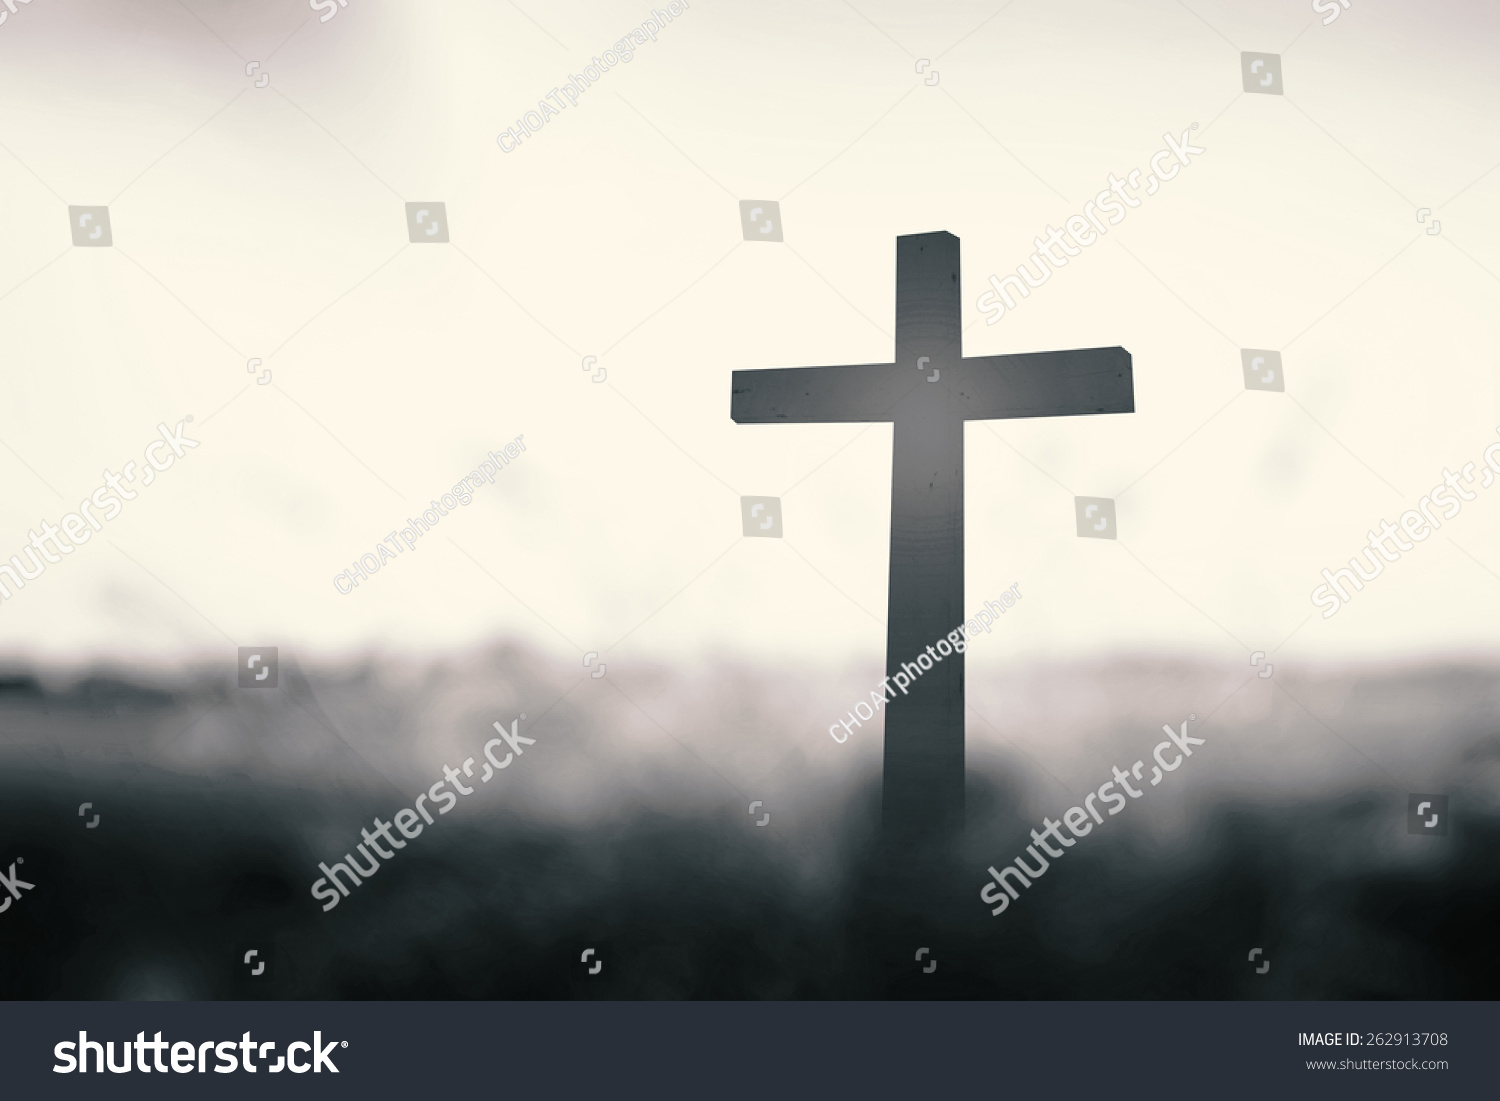 Royalty Free Symbol For Jesus Christ Silhouette The 262913708